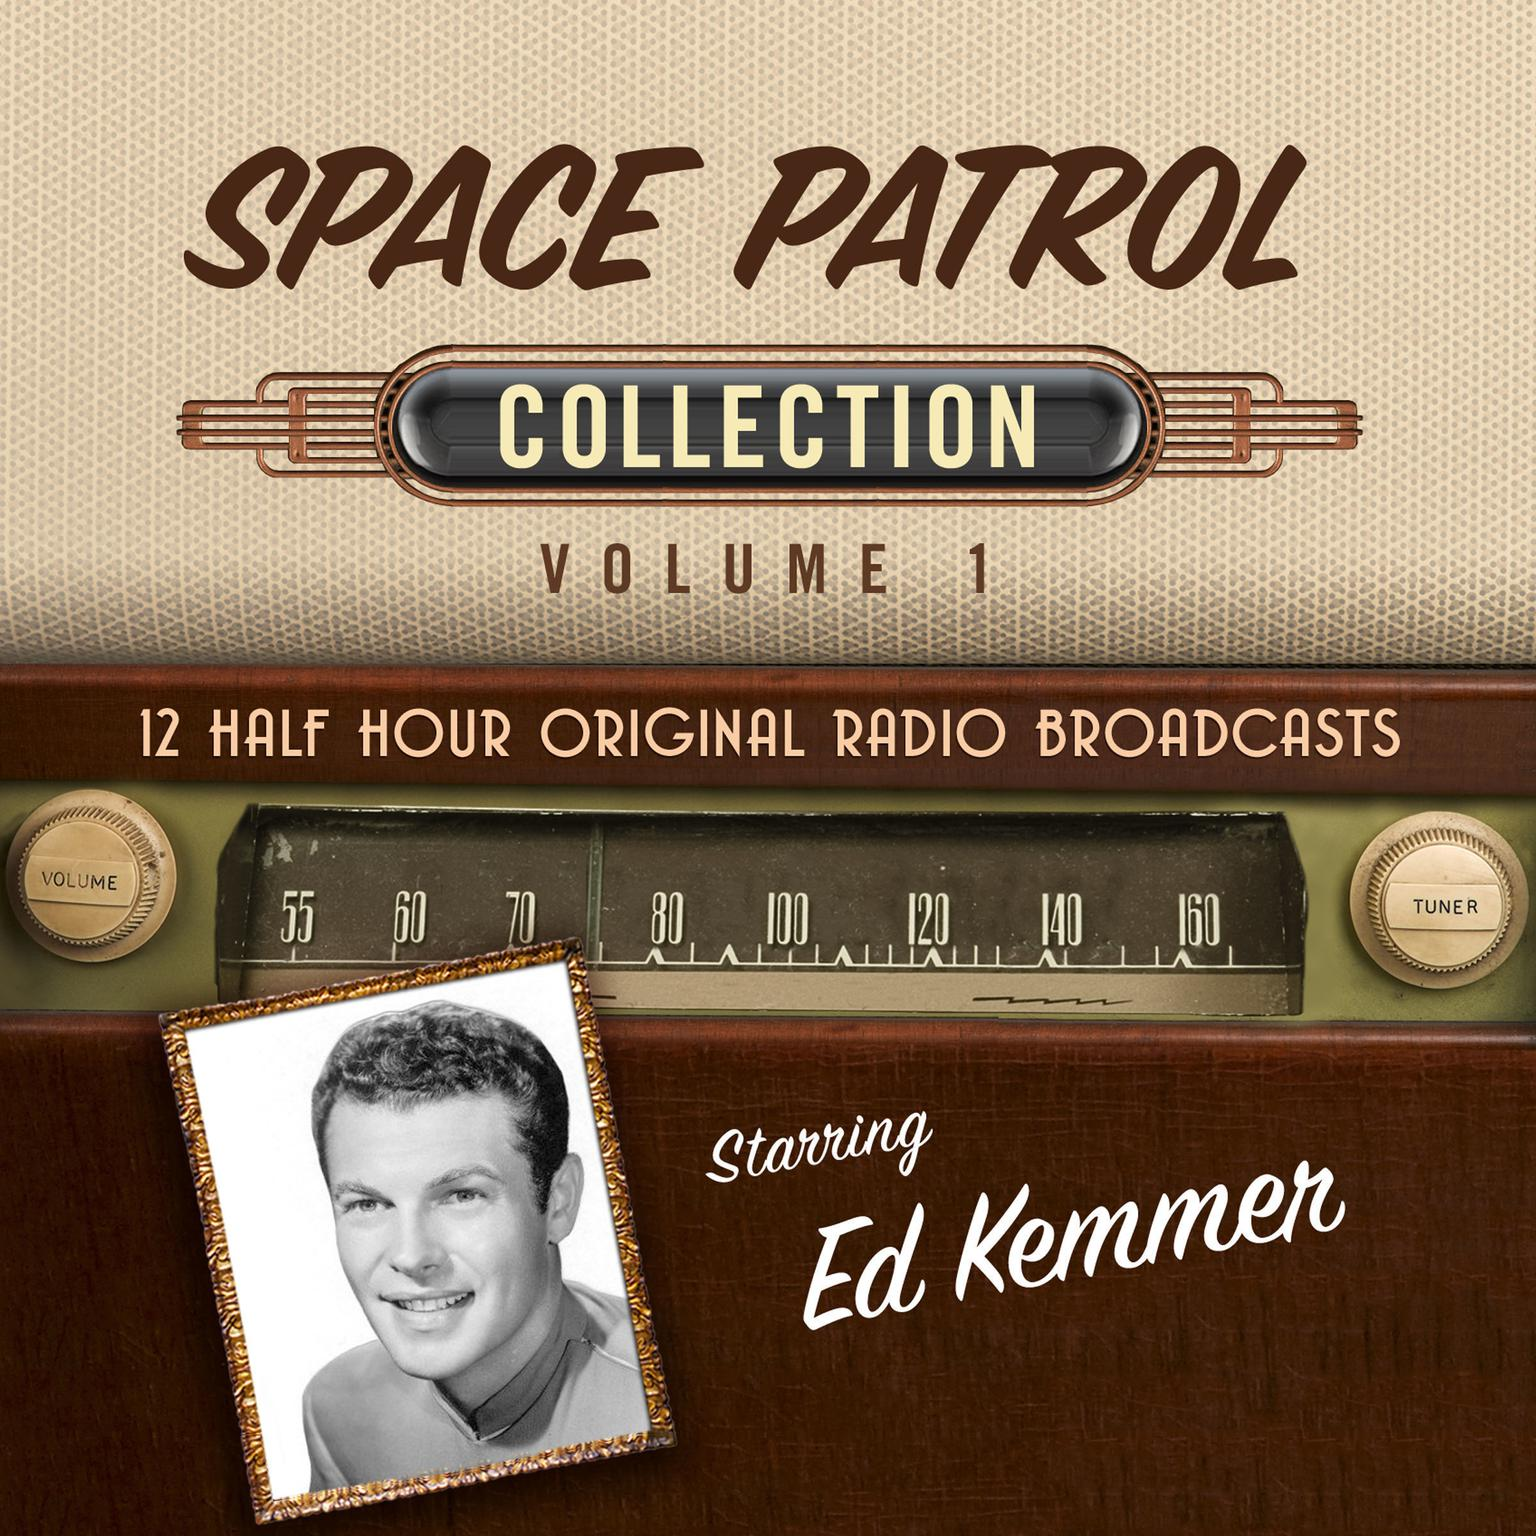 Space Patrol, Collection 1 Audiobook, by Black Eye Entertainment